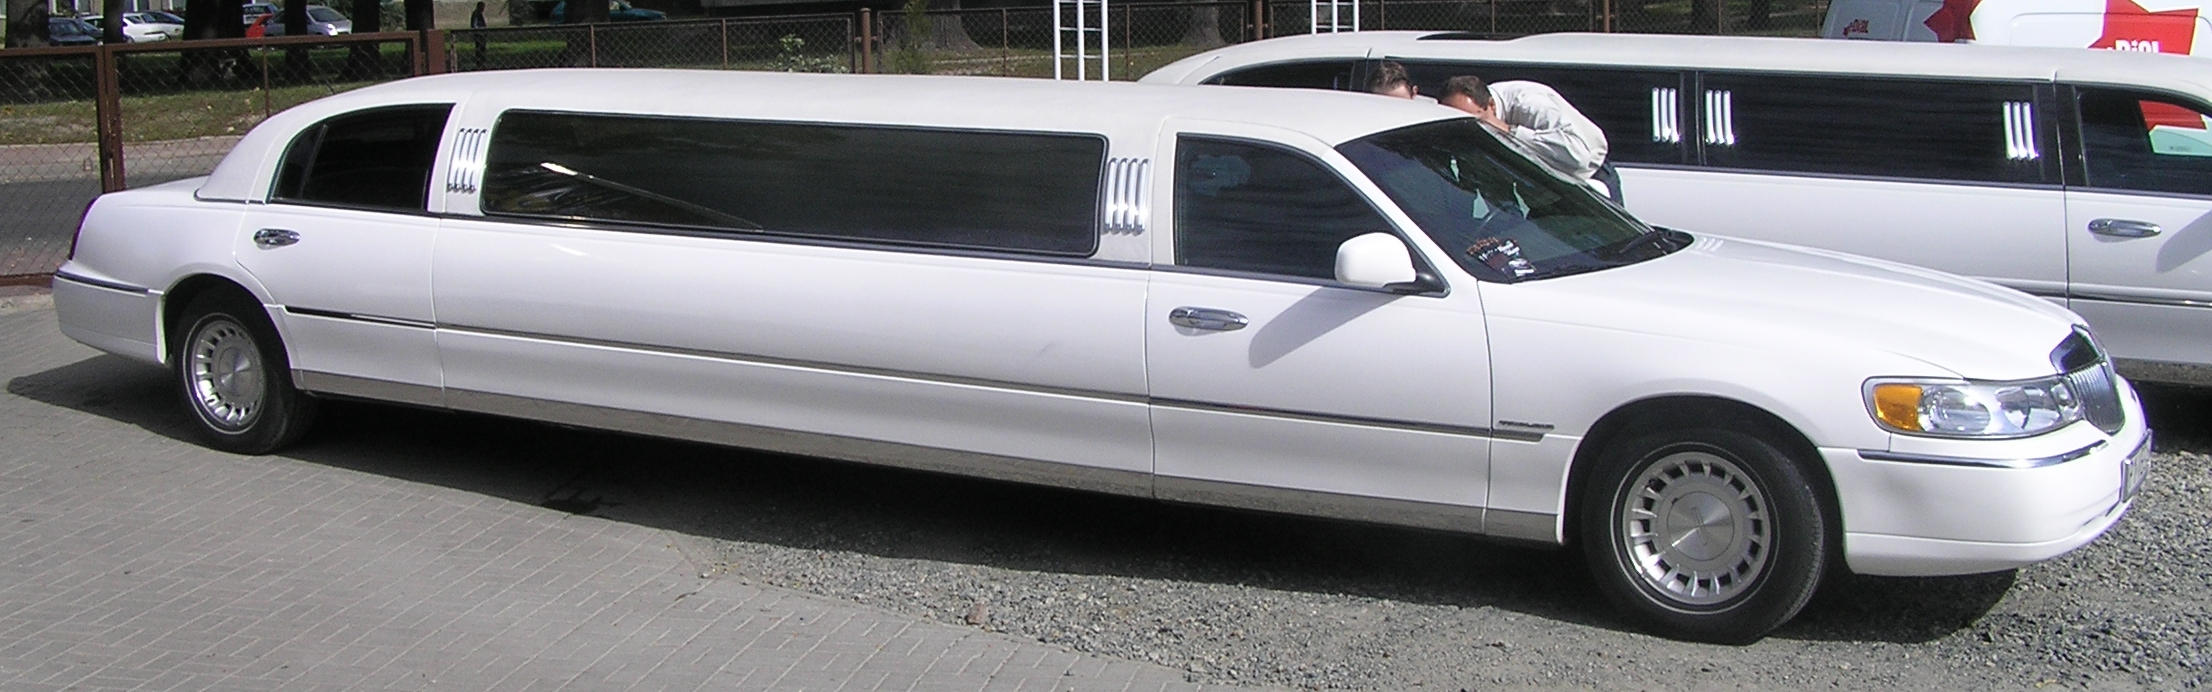 Luxury Limo Rentals in London